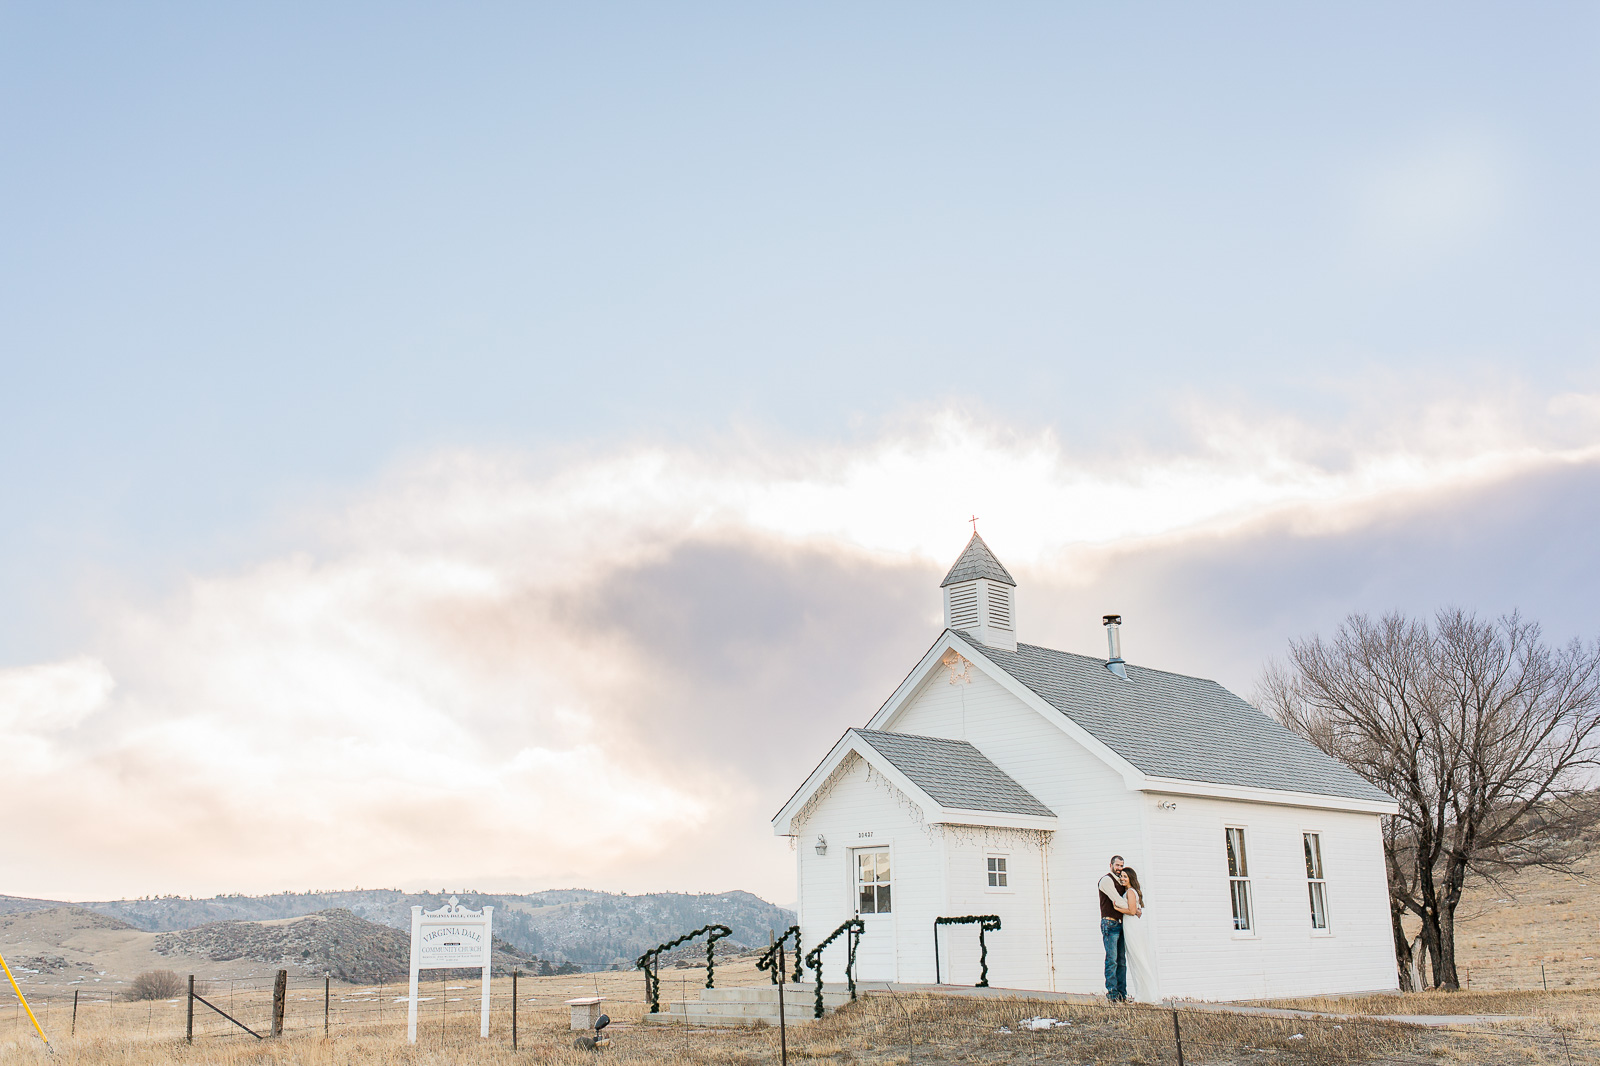 Virginia dale colorado winter elopement, wedding photography by Megan Lee Photography based in Laramie Wyoming